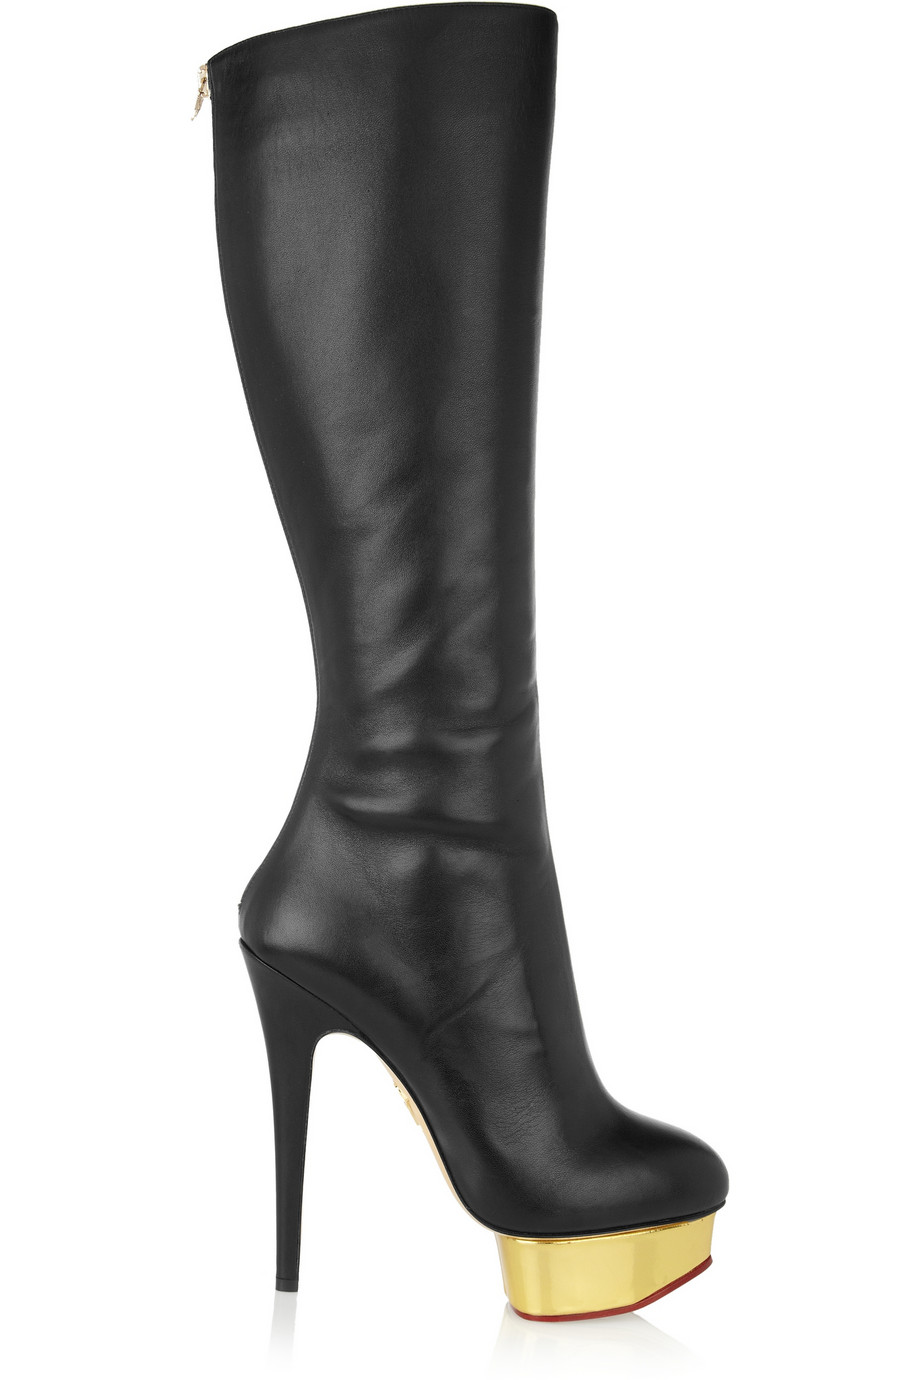 Charlotte olympia Bonnie Leather Platform Knee Boots in Black ...